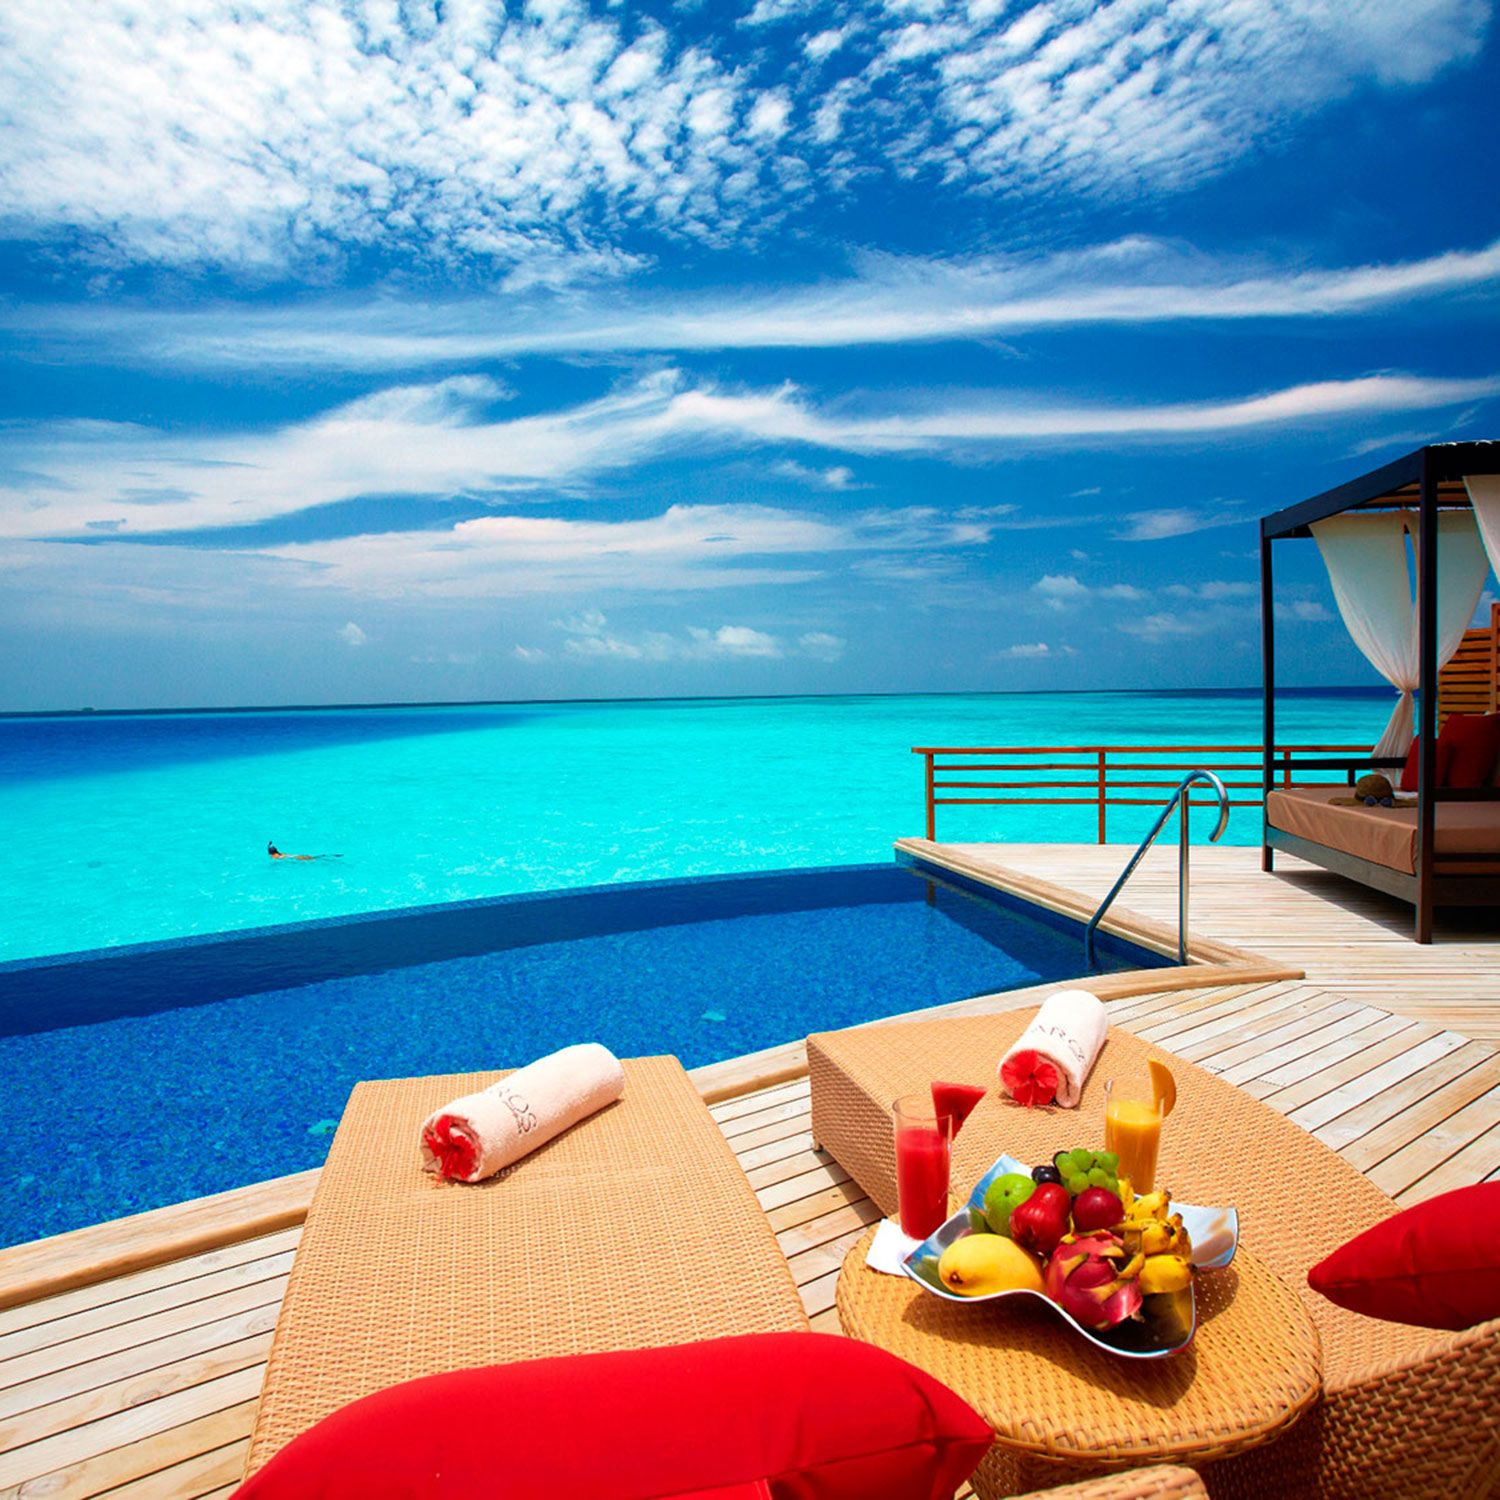 The Worlds Best Balconies Balconies Maldives And Amazing Places - Where is maldives in the world